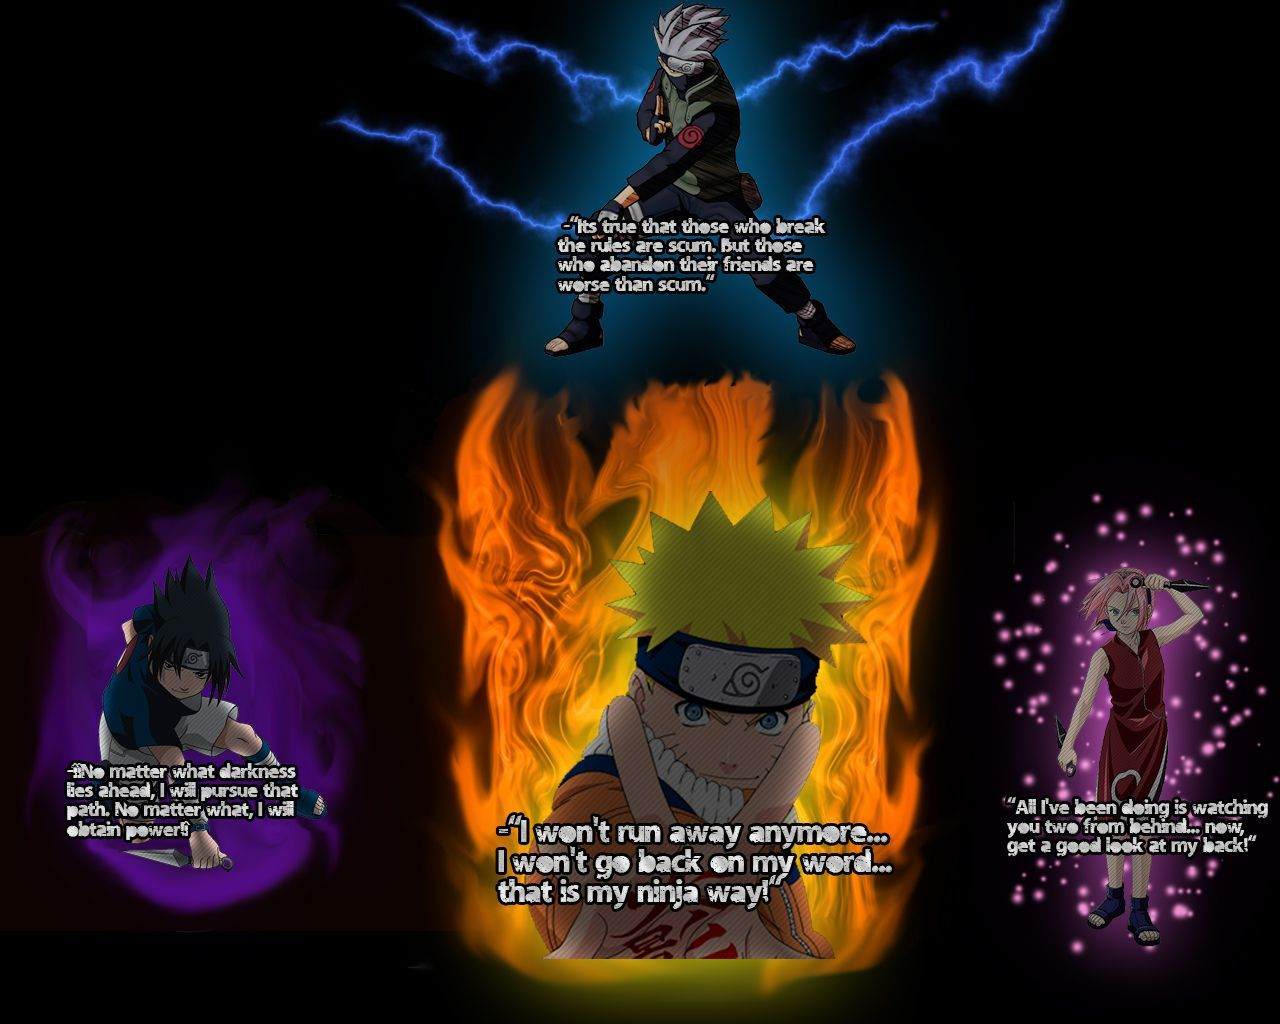 Naruto Quotes Wallpapers   Top Naruto Quotes Backgrounds 1280x1024